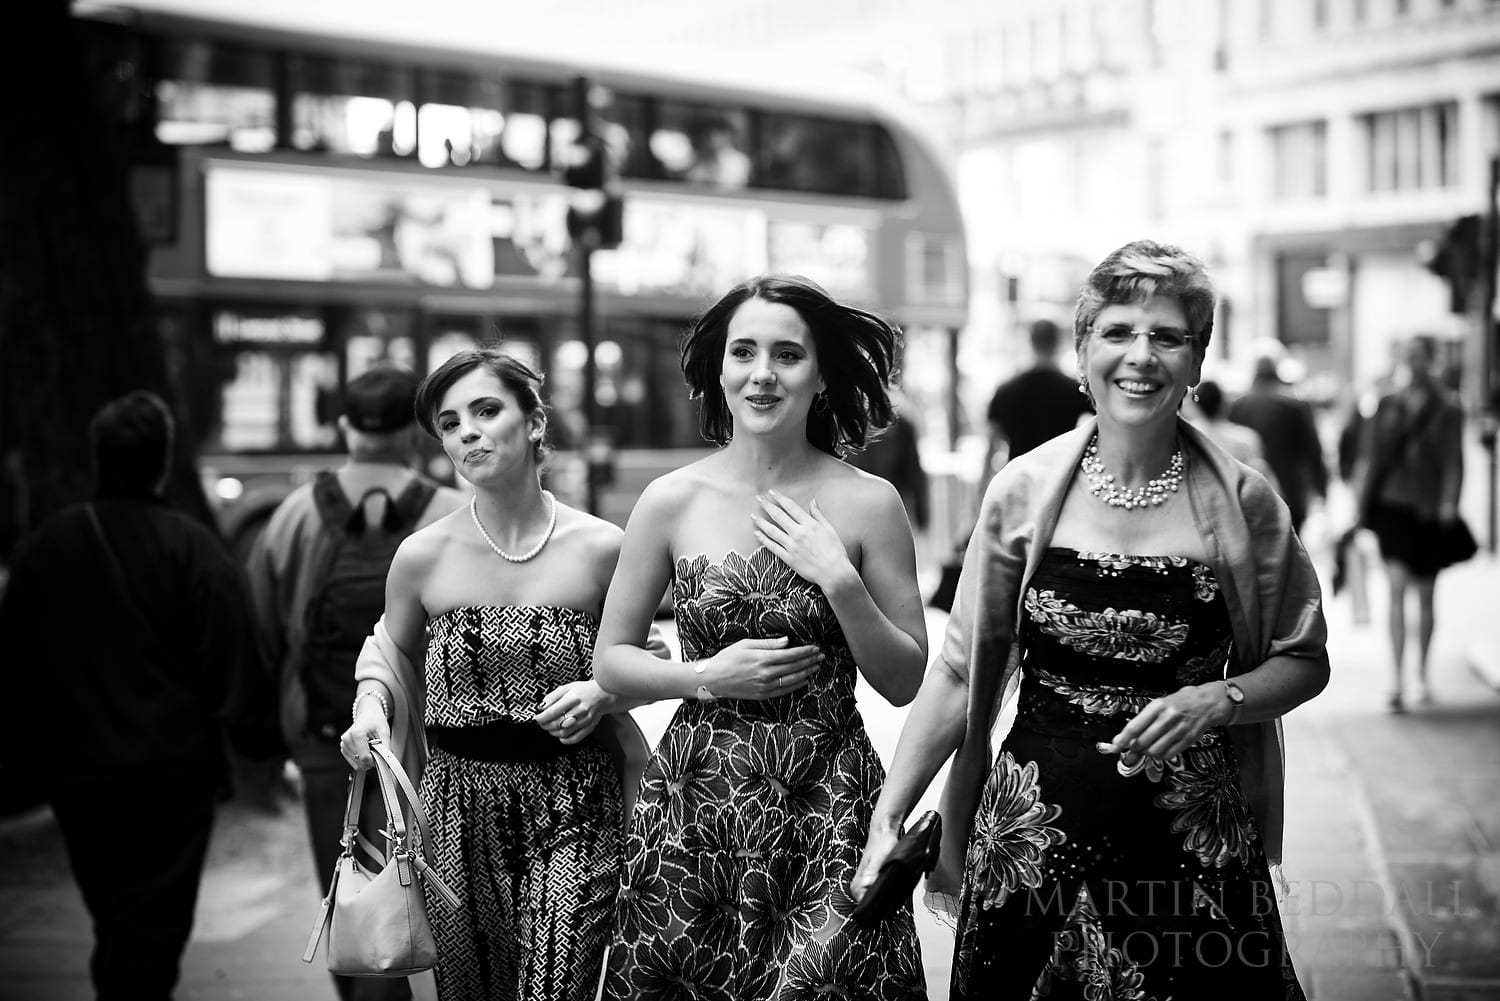 Bride arrives with her mother and sister at One Aldwych